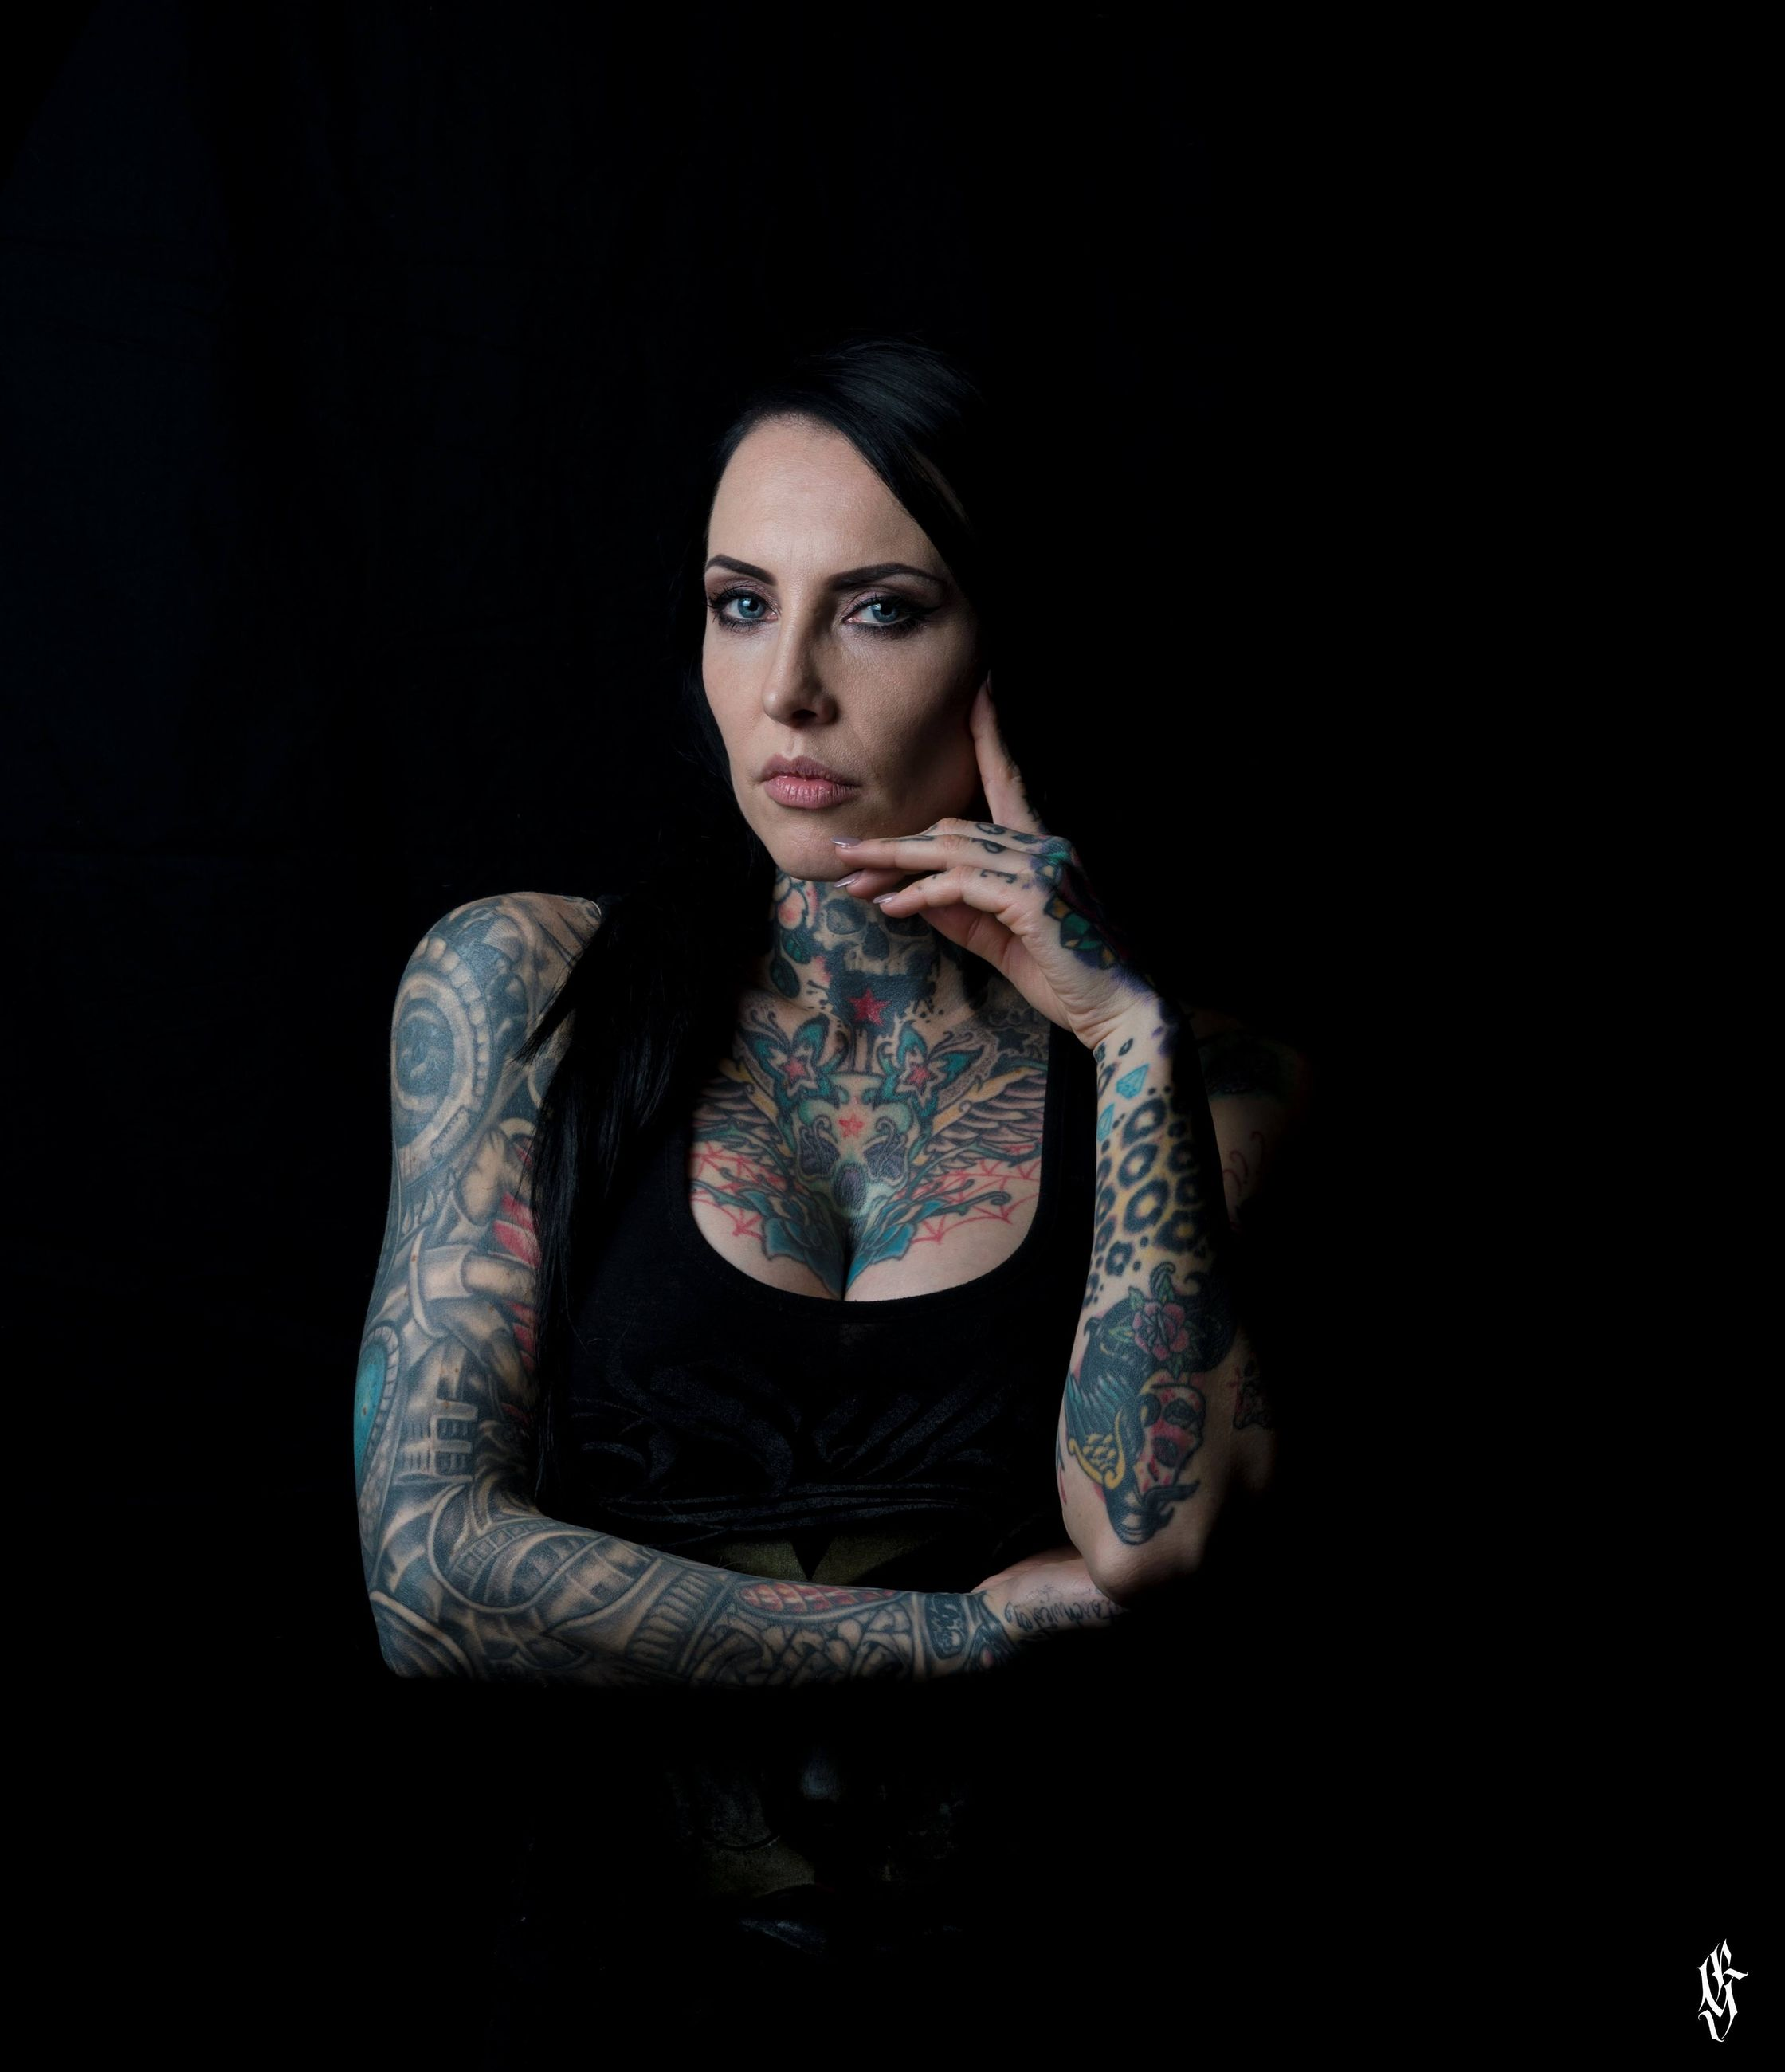 one person, studio shot, black background, front view, tattoo, looking at camera, indoors, young adult, portrait, adult, cut out, lifestyles, women, fashion, waist up, young women, casual clothing, standing, beautiful woman, dark, contemplation, hairstyle